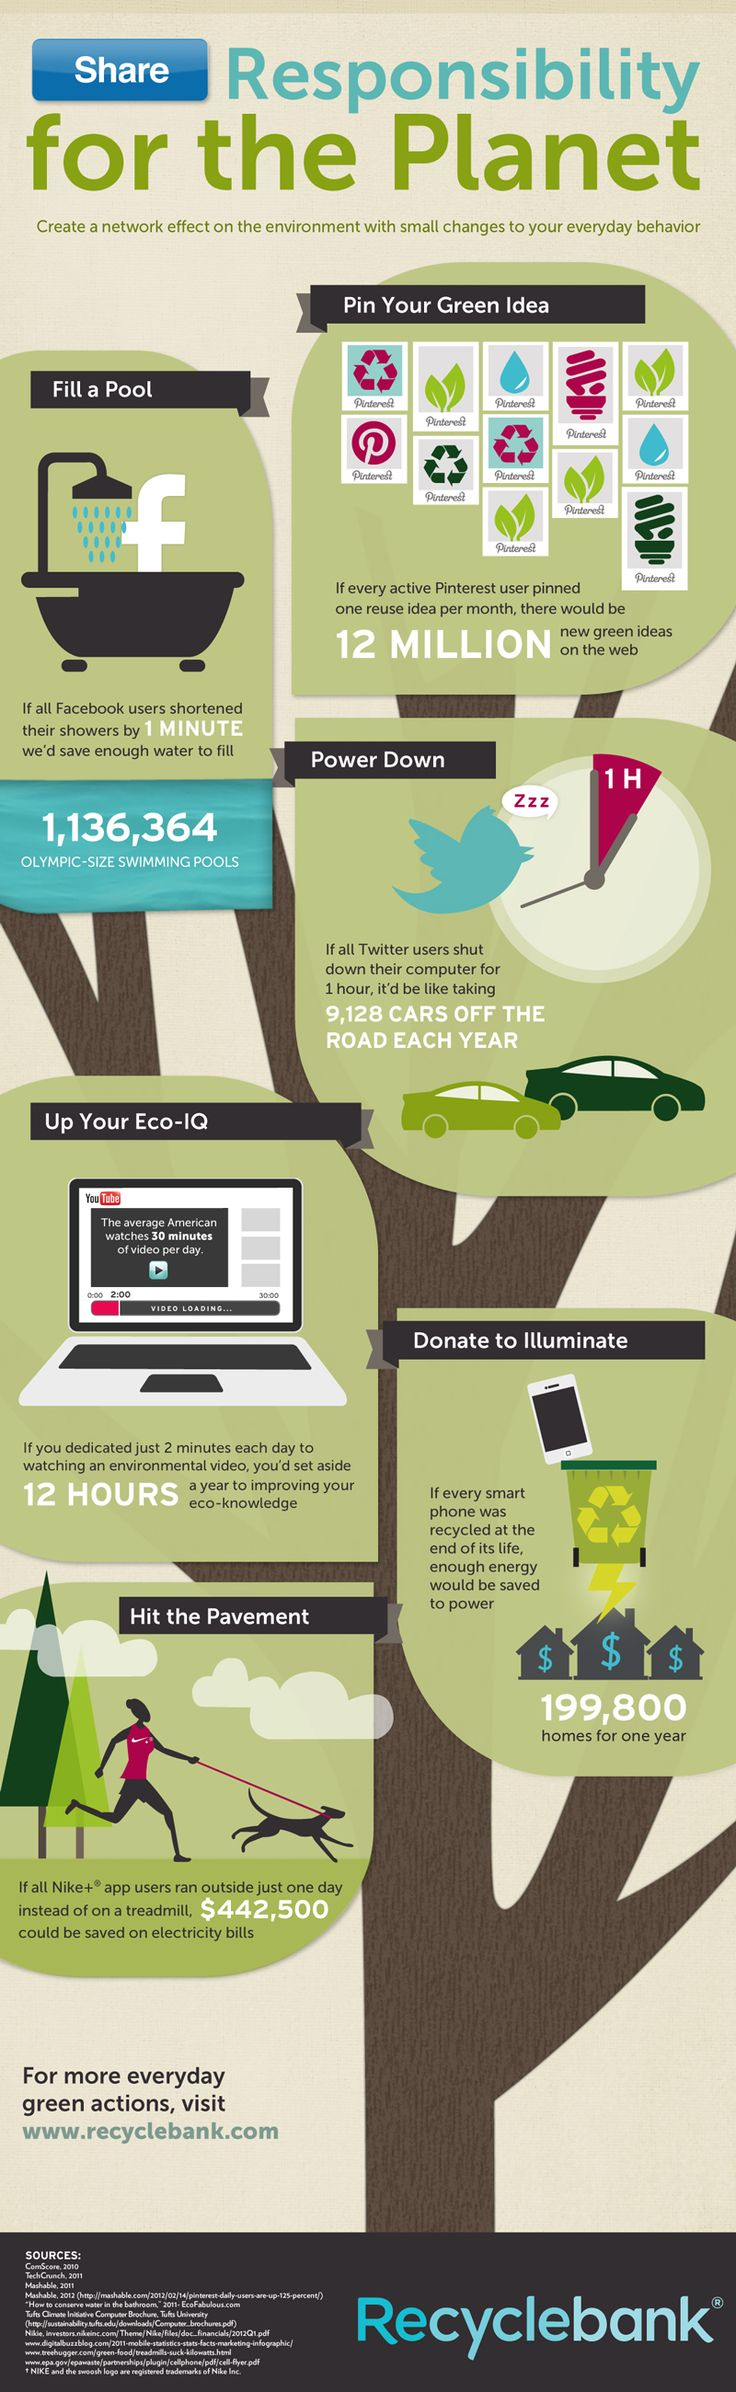 Earth Day 2012 Infographic! Great tips for personal opportunities to impact our earth.